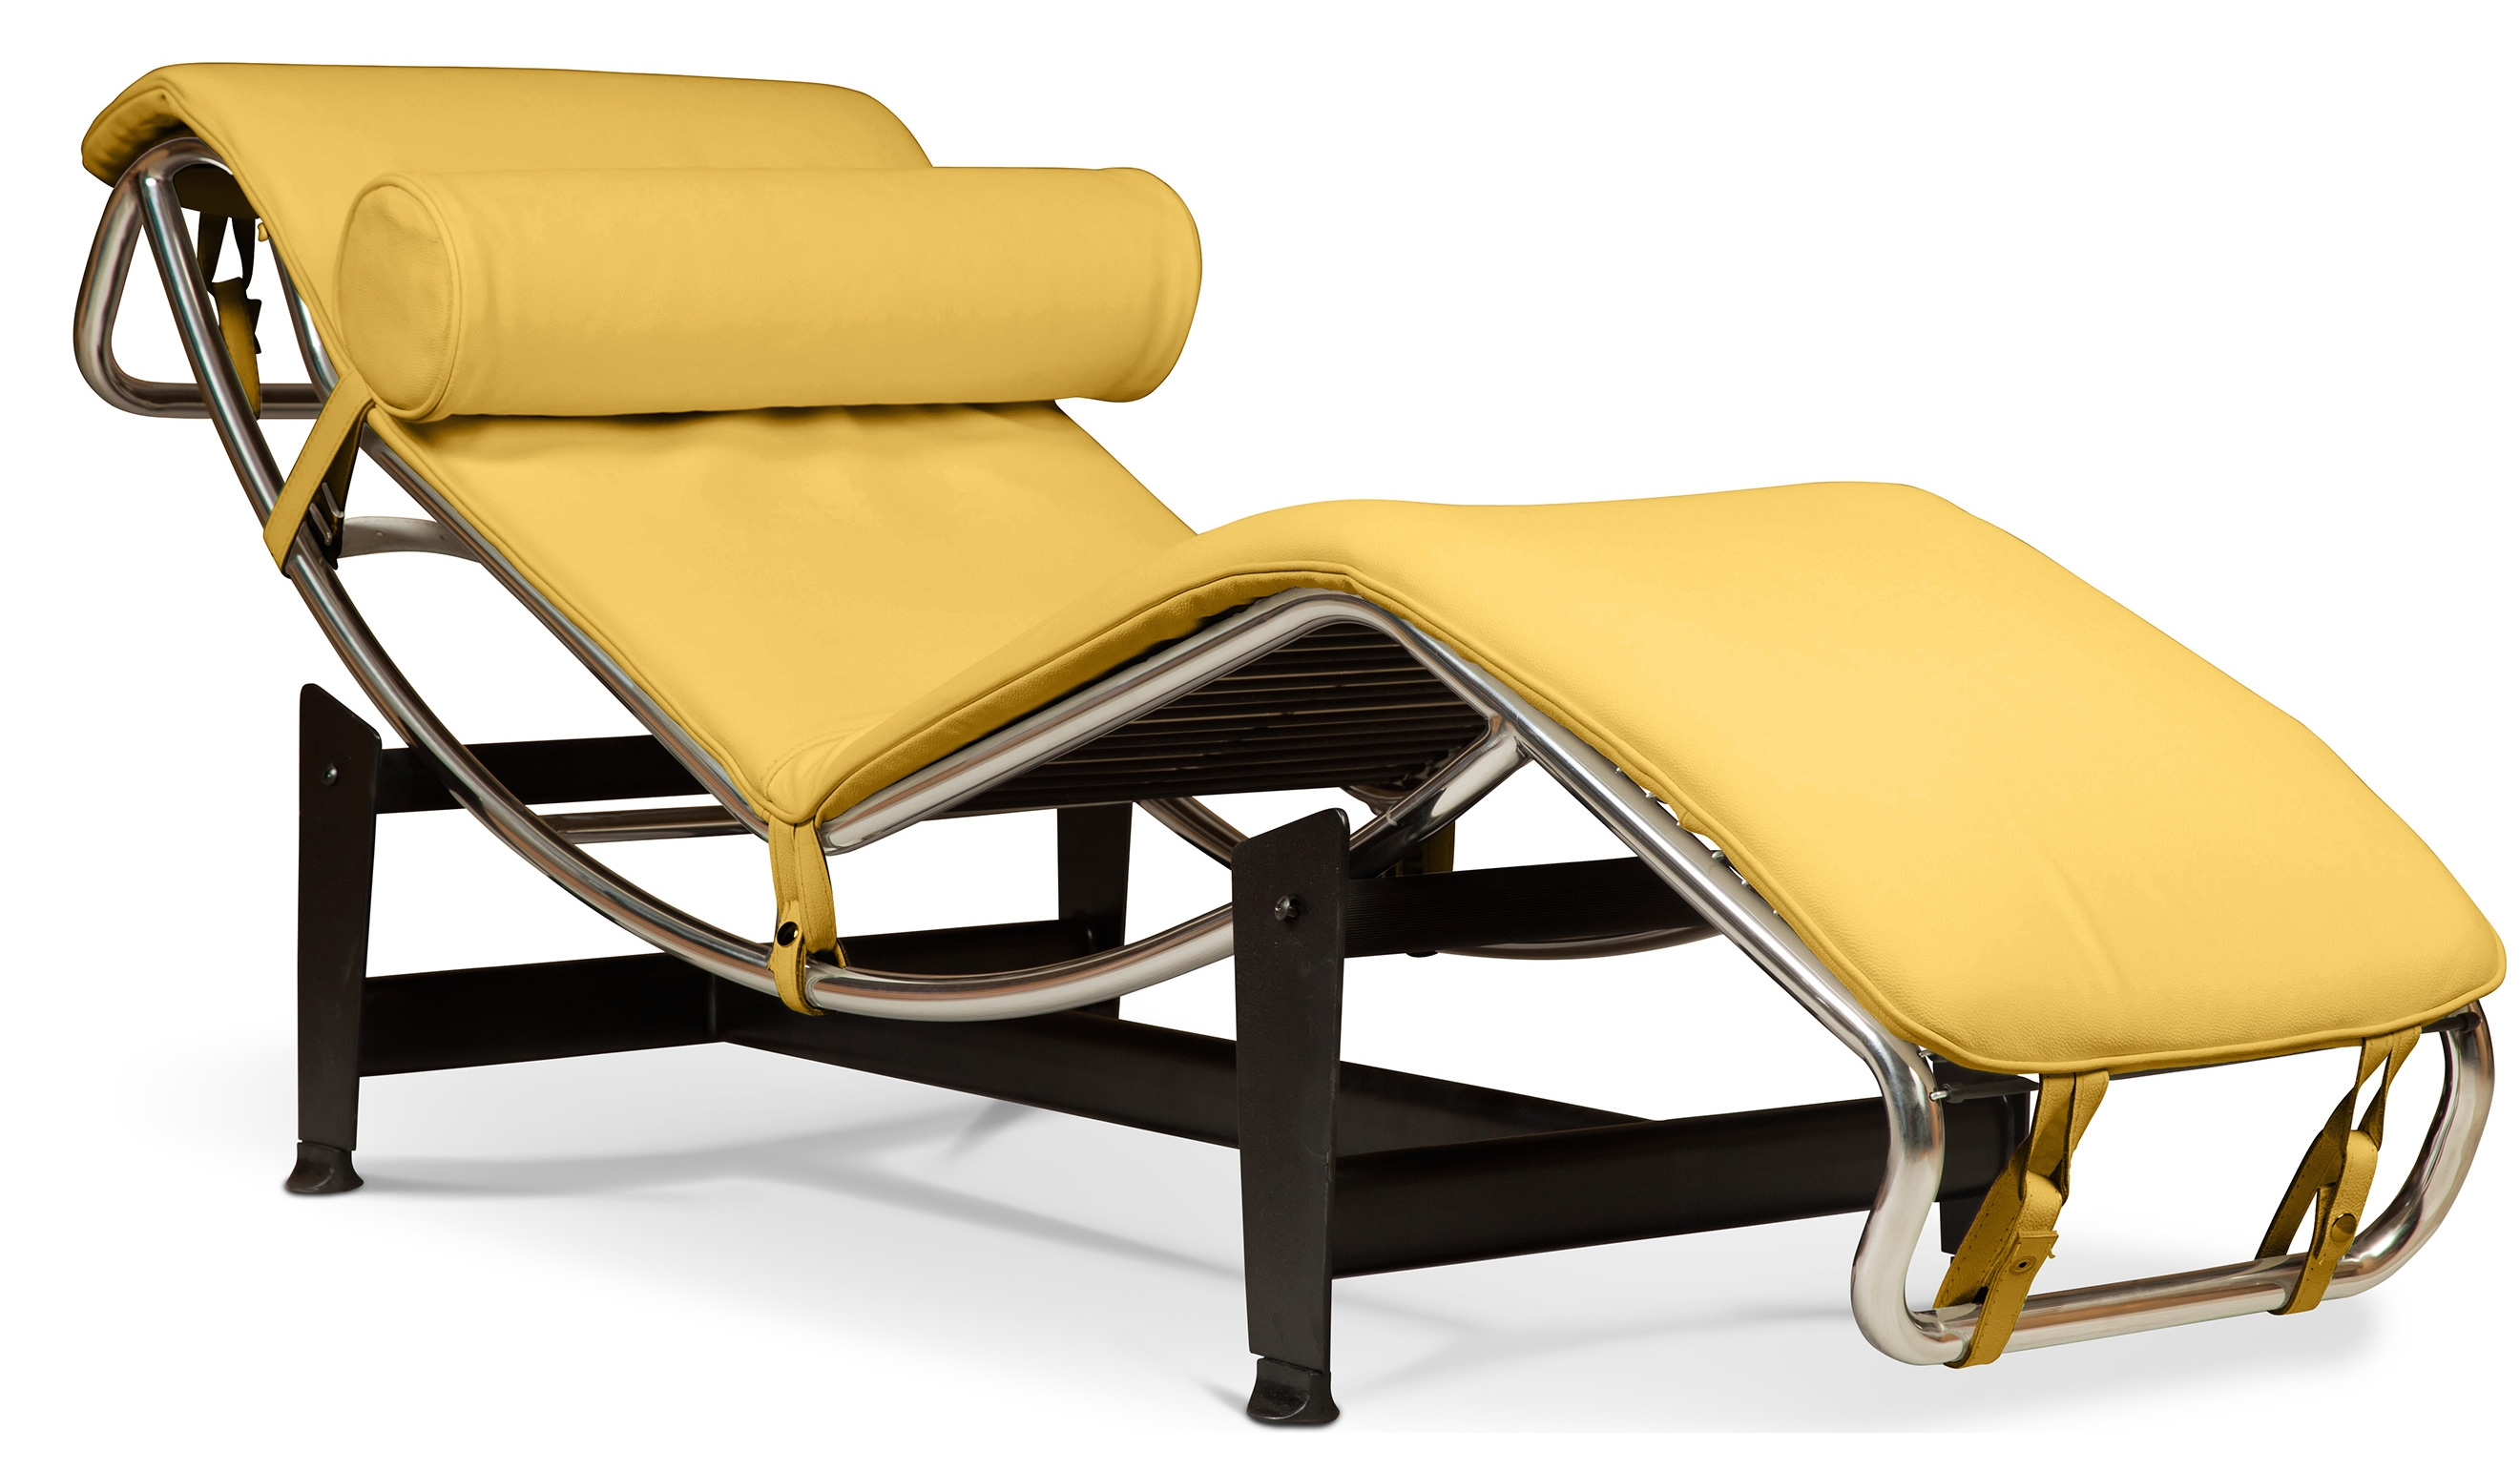 chaise longue simili jaune karly. Black Bedroom Furniture Sets. Home Design Ideas